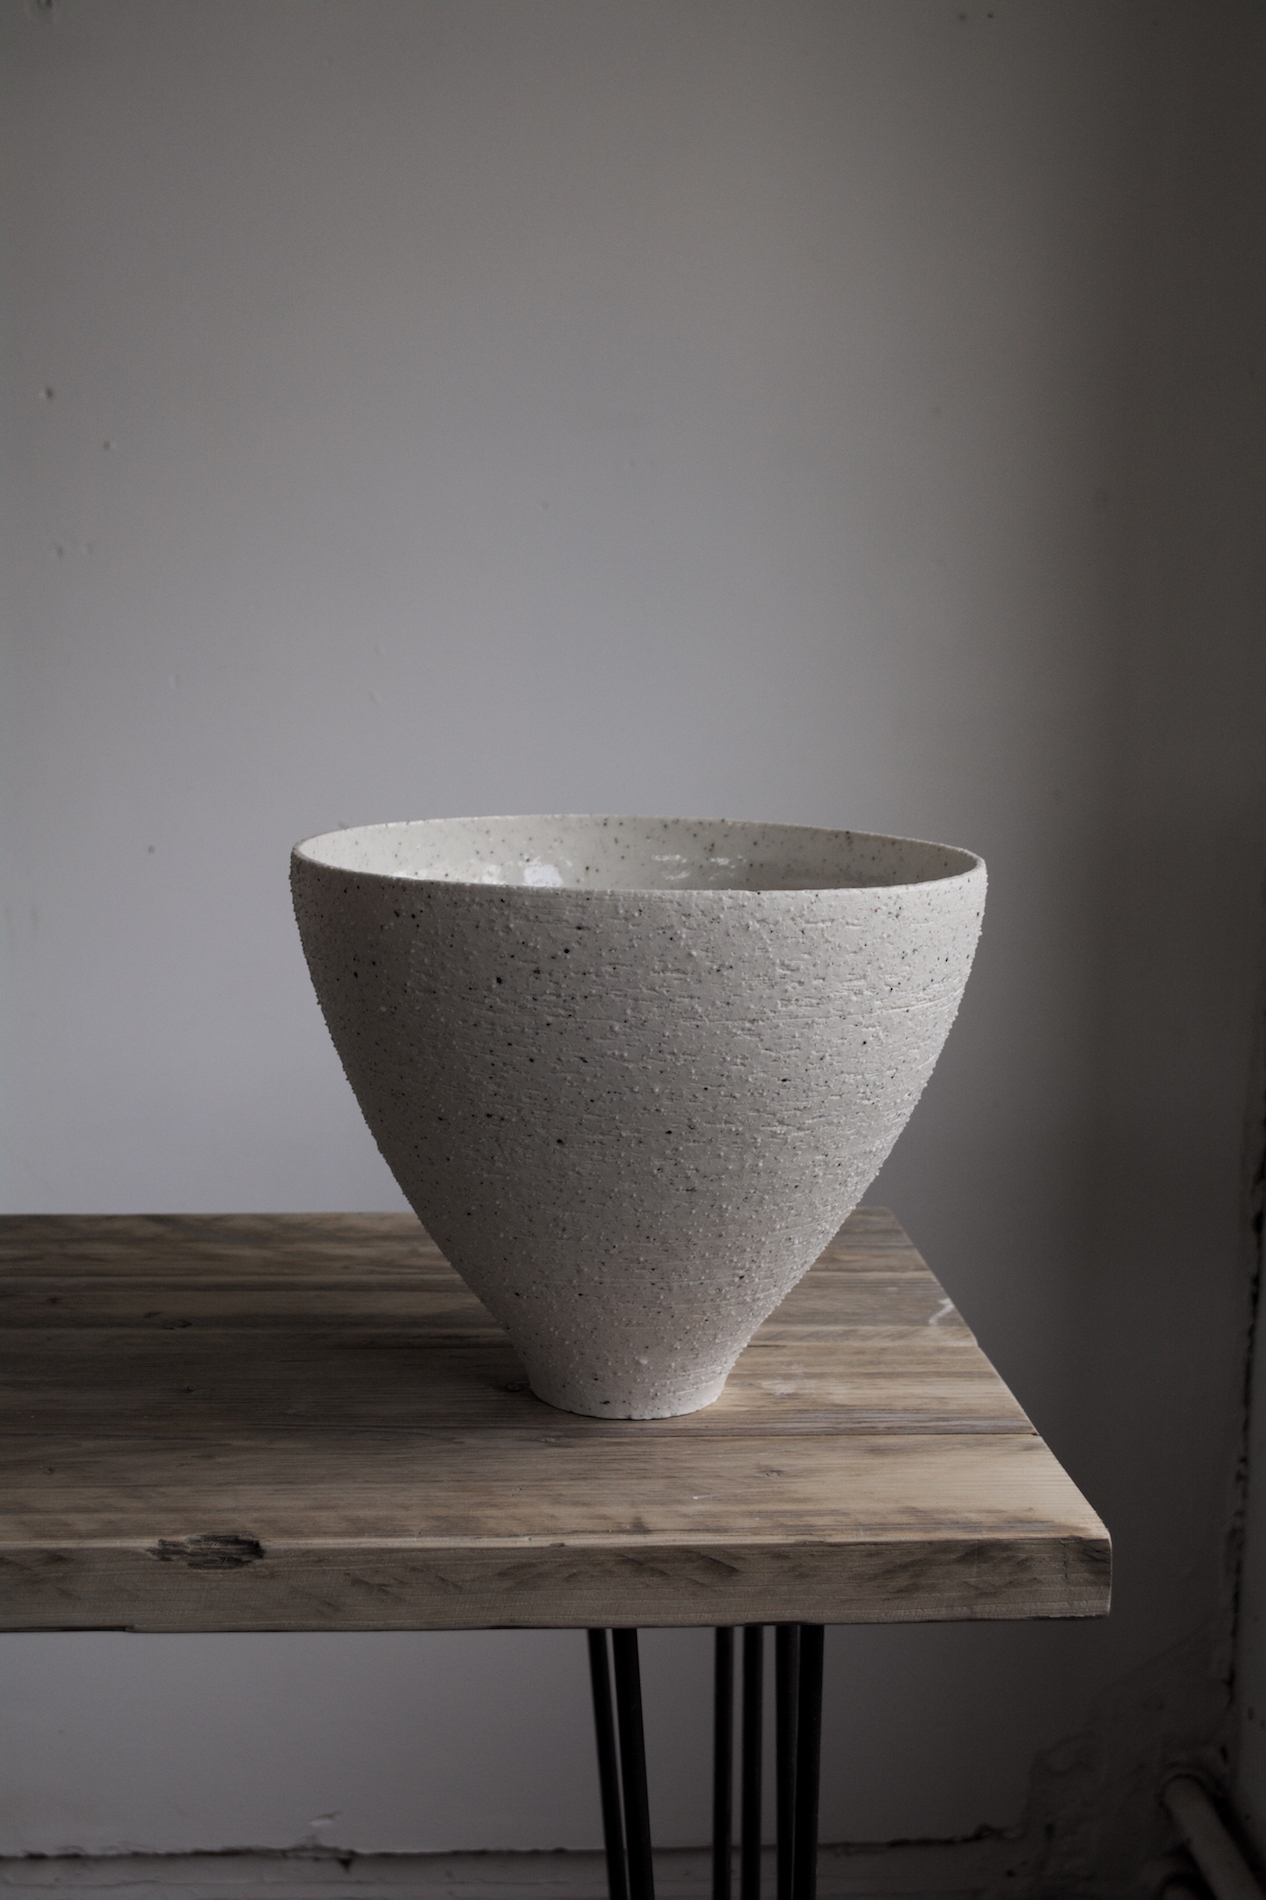 Ground, 2018. 21x26cm   Thrown porcelain with an addition of granite collected from Slieve Donard, County Down, Northern Ireland.